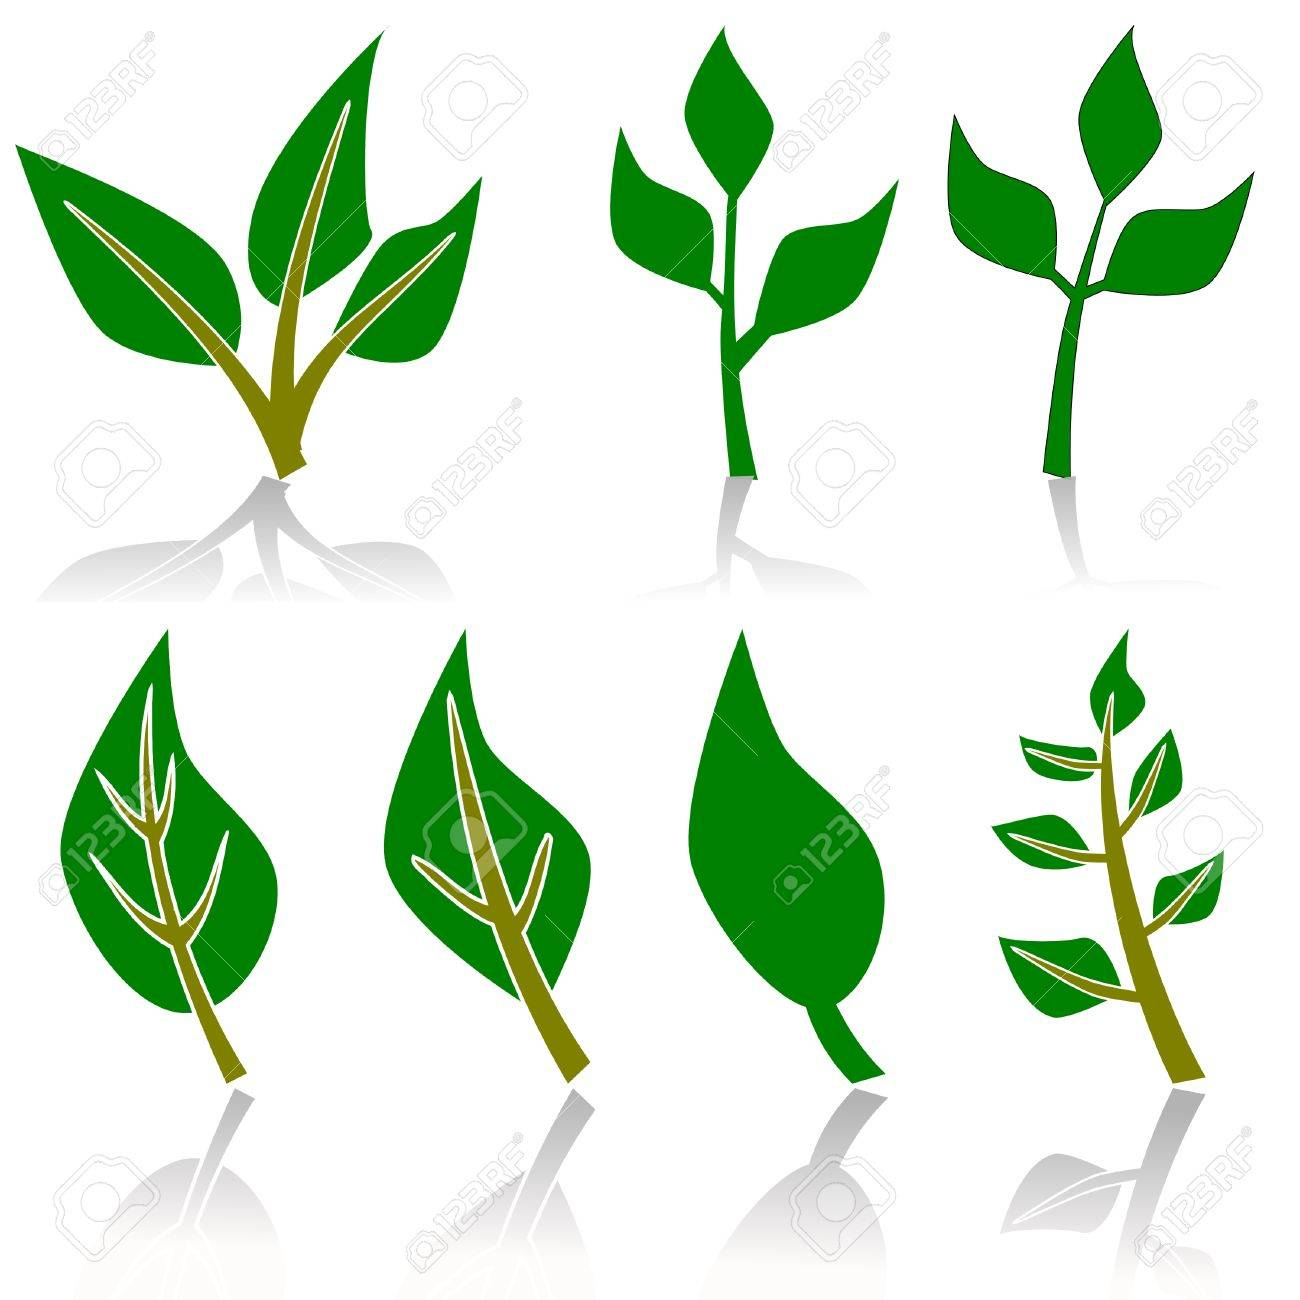 leaf or plant ecology or environment sign Stock Vector - 3483287